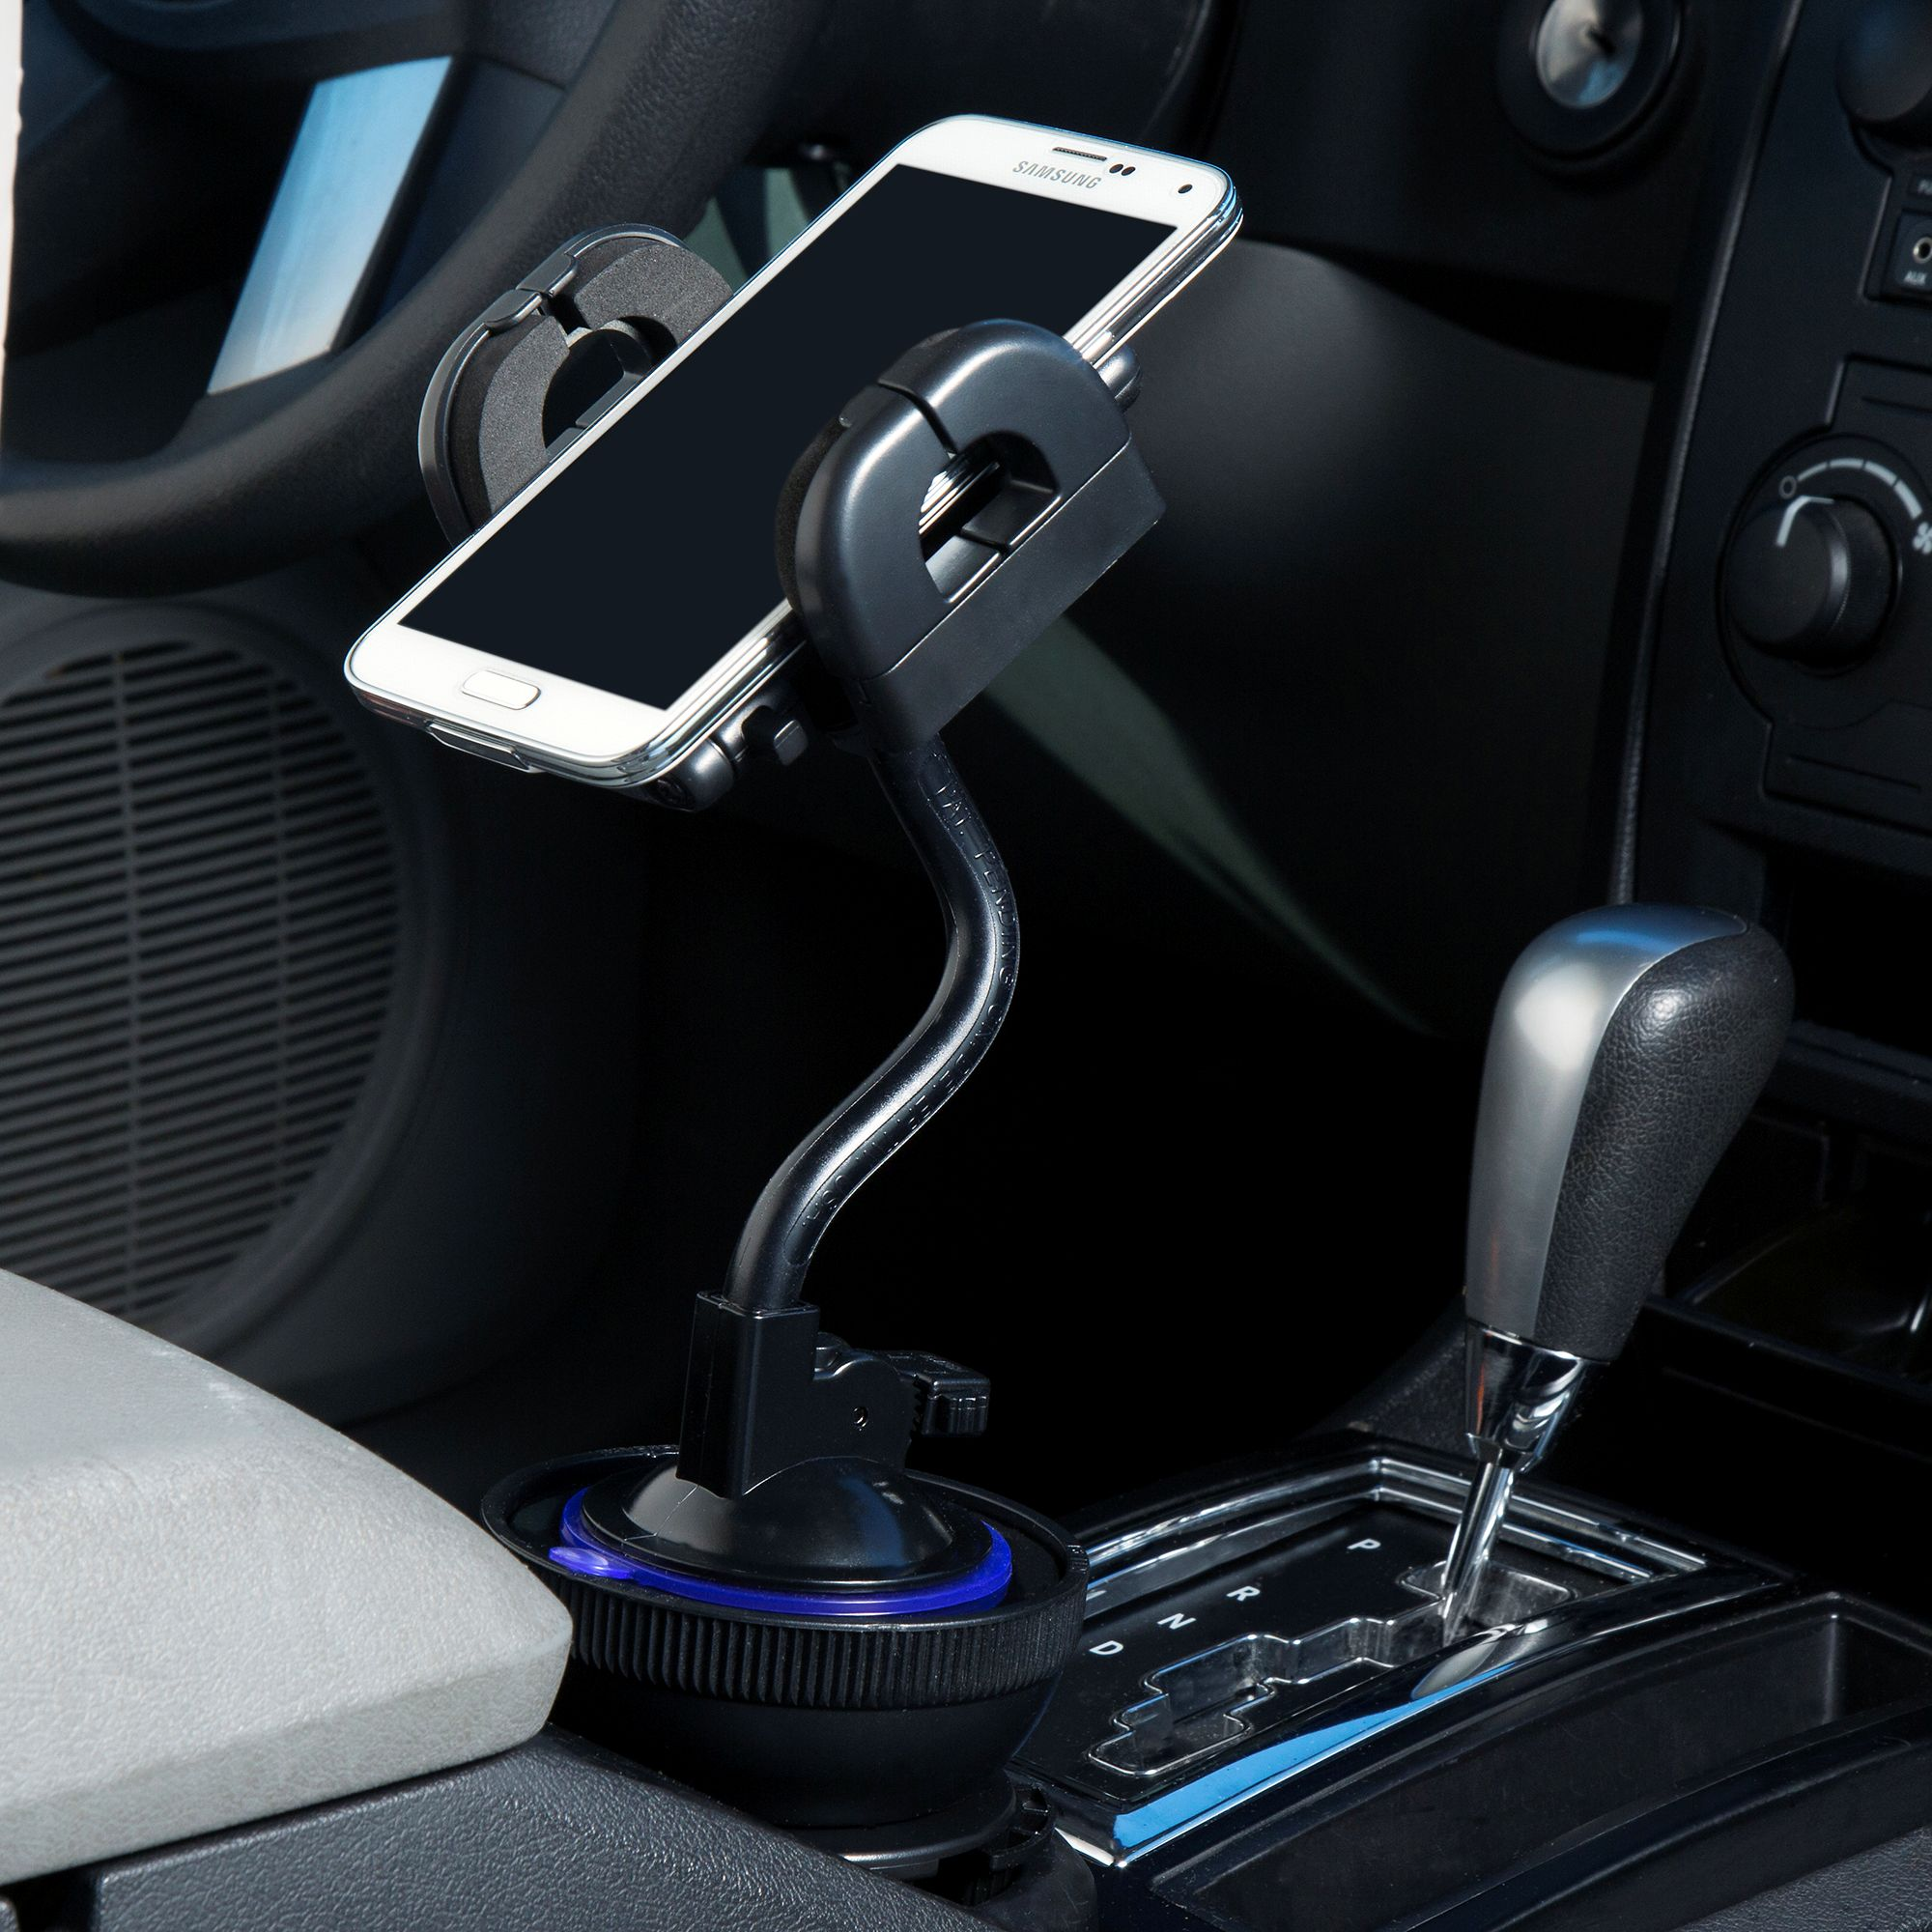 Unique Auto Cupholder and Suction Windshield Dual Purpose Mounting System for Magellan Roadmate 1210 - Flexible Holder System Includes Two Mount Options